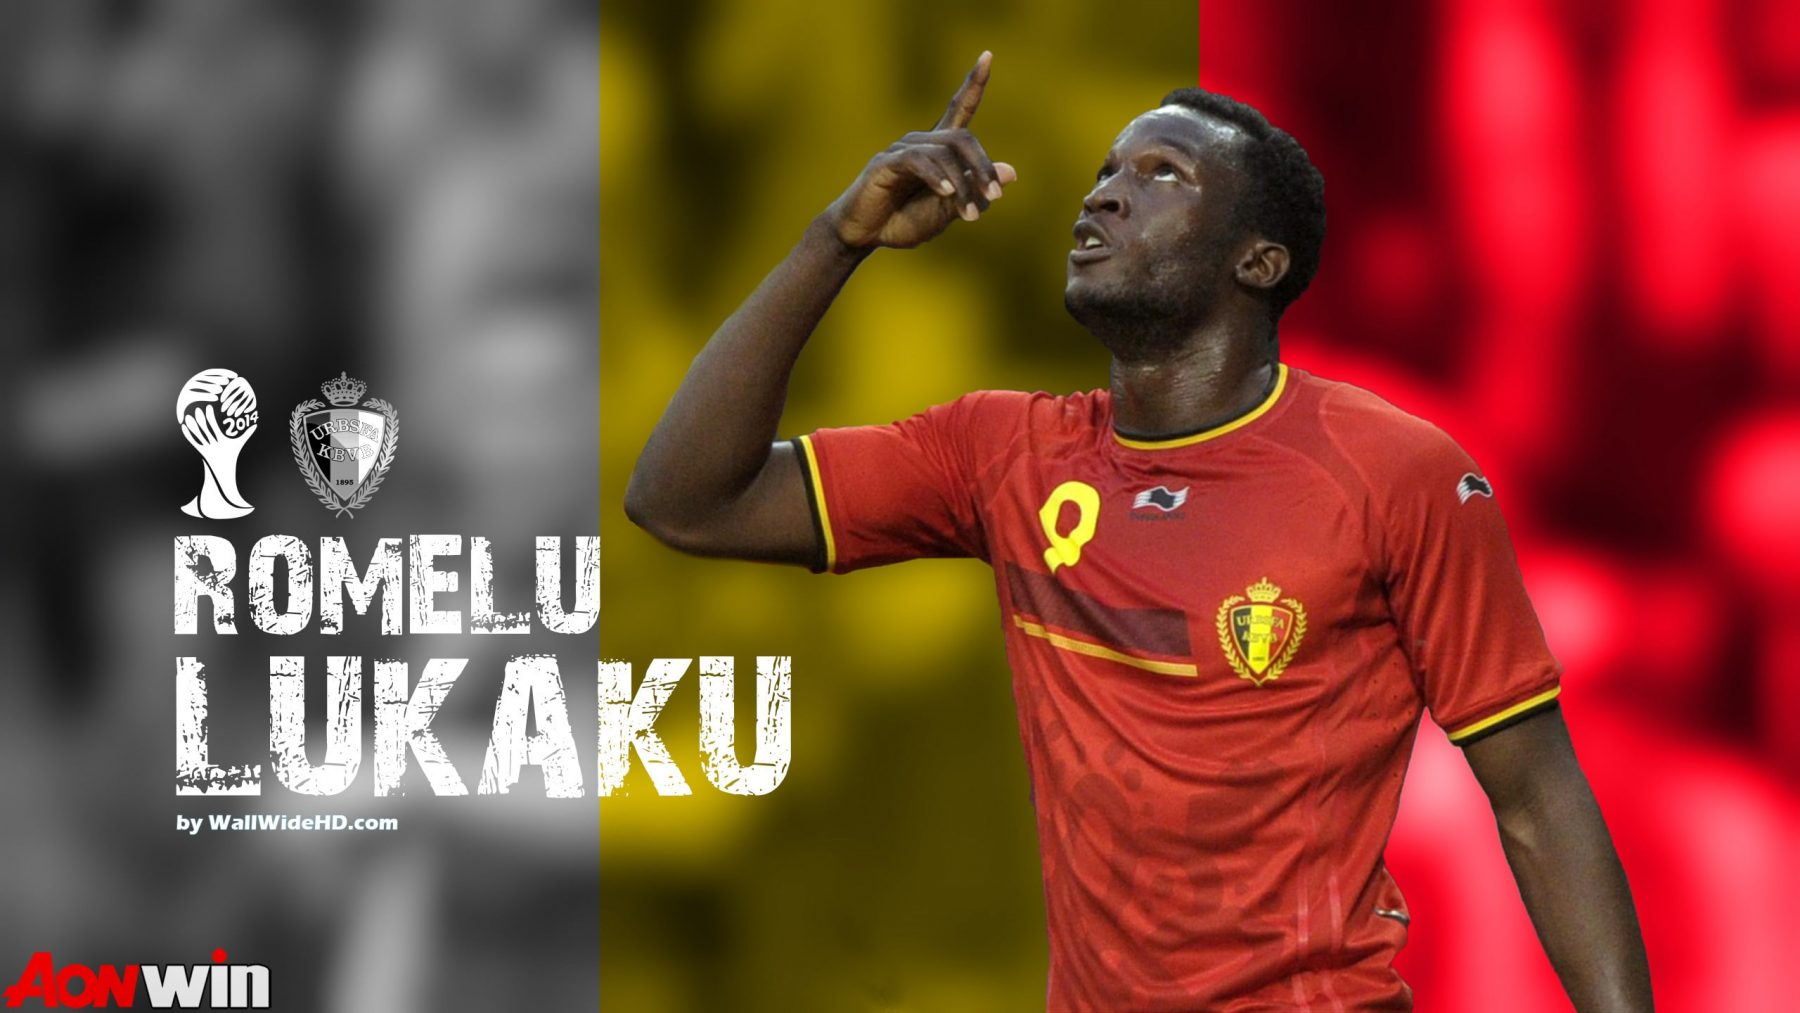 Romelu Lukaku HD Wallpapers